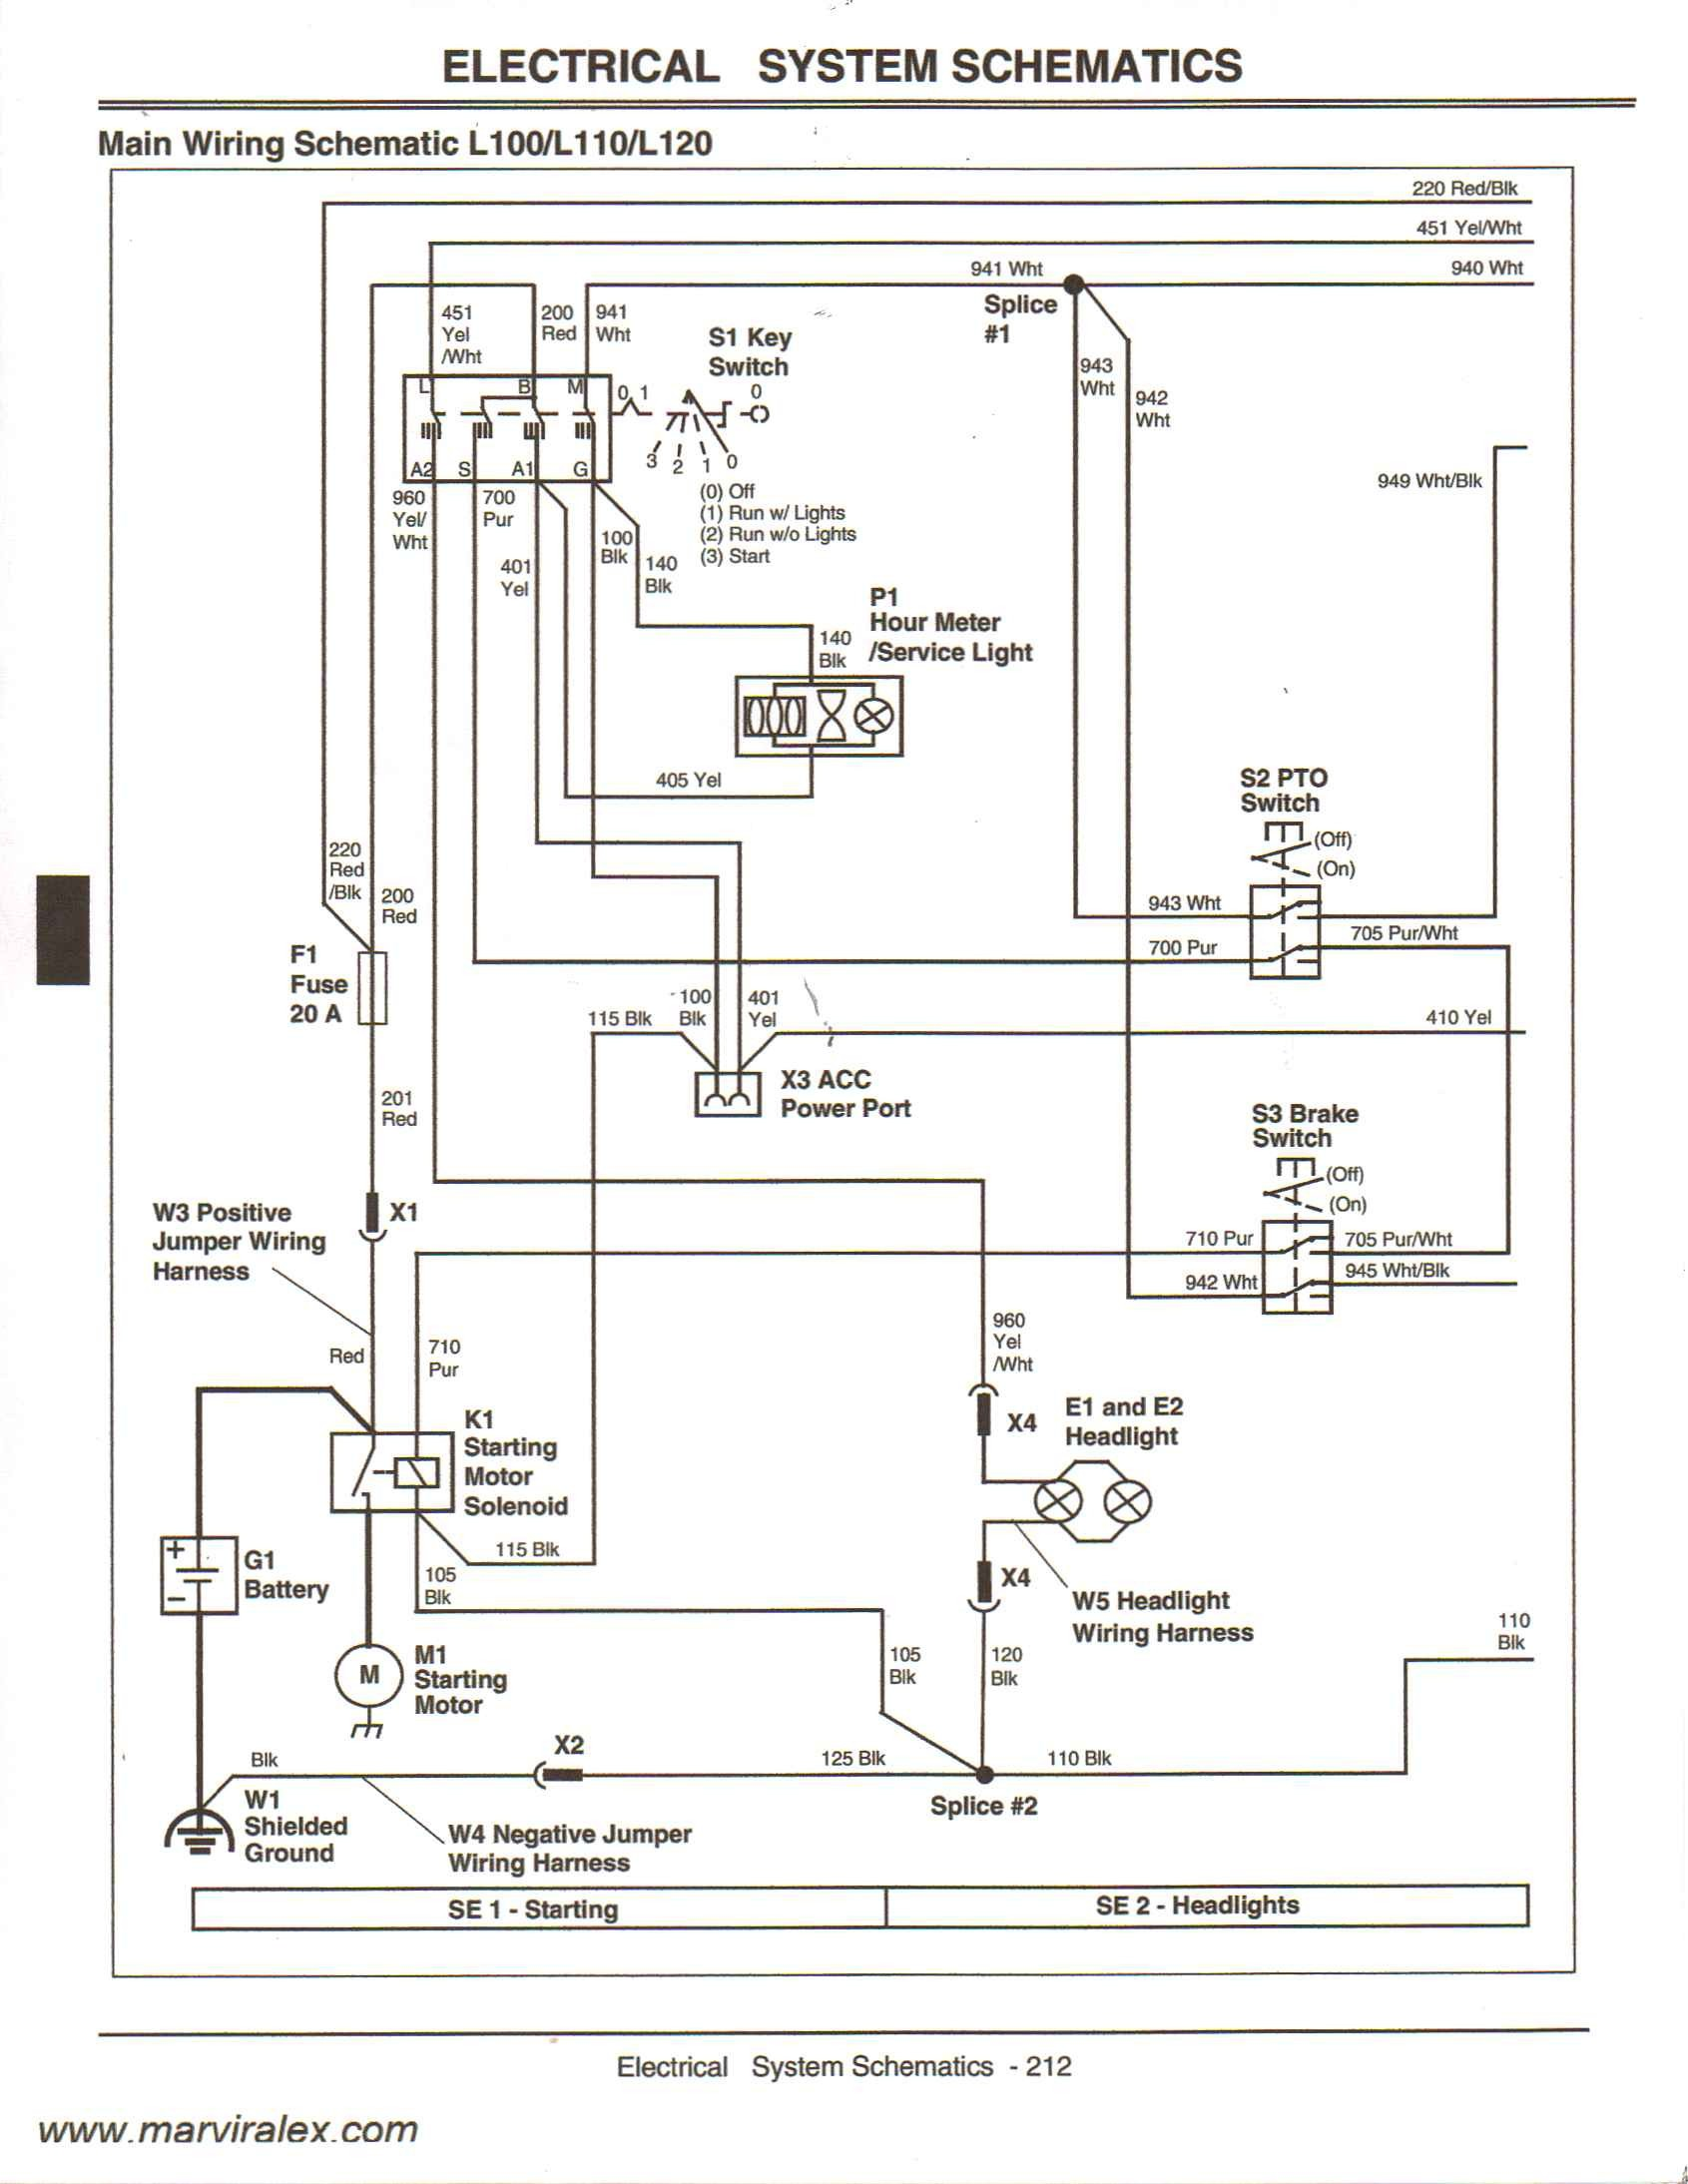 Wiring Diagram For John Deere 2020 - Wiring Diagram Source